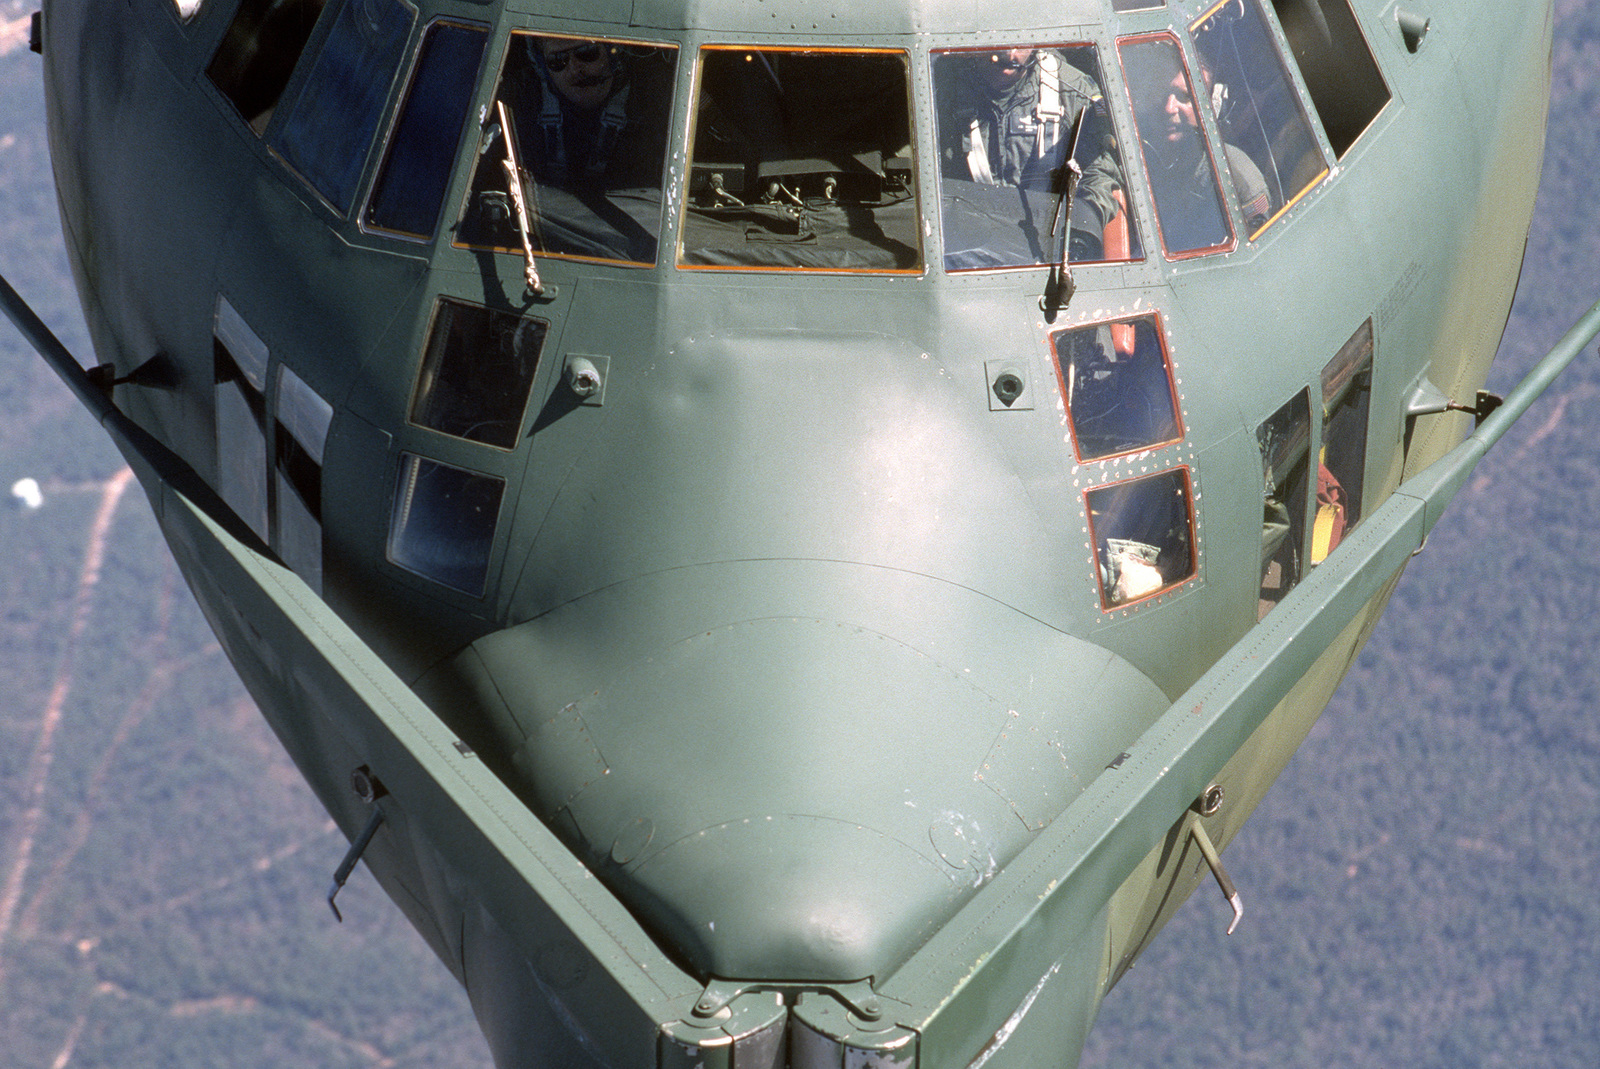 a-close-up-air-to-air-view-of-fulton-recovery-system-equipment-mounted-on-the-c2d2e9-1600_1.jpg